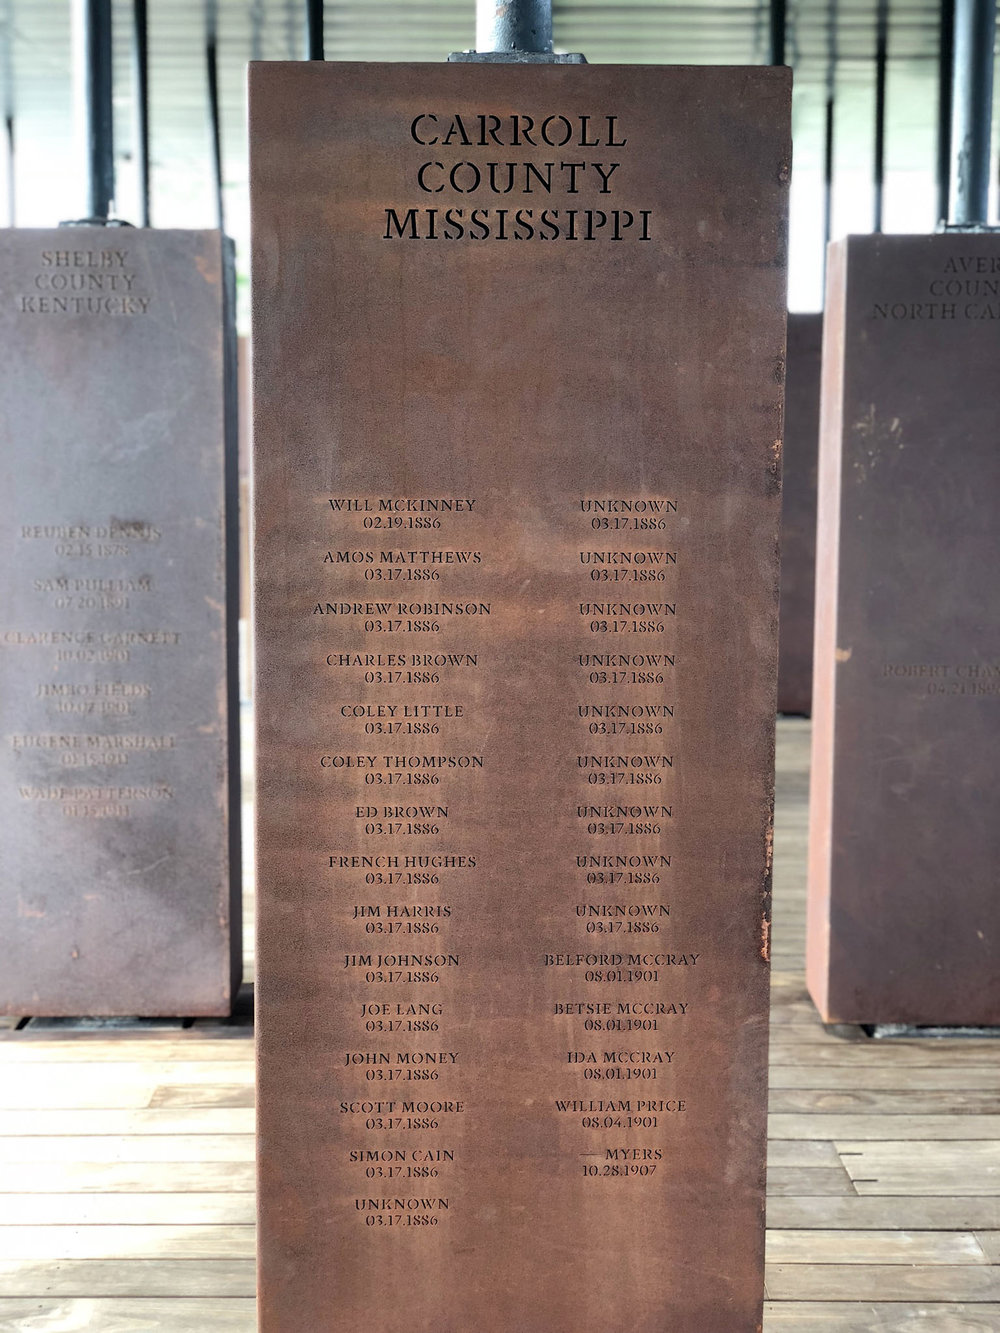 Each steel monument represents a county in which racial terror lynchings were ritualistically performed. They were spectator events; white families would send postcards with photos of lynchings in their town to family members.